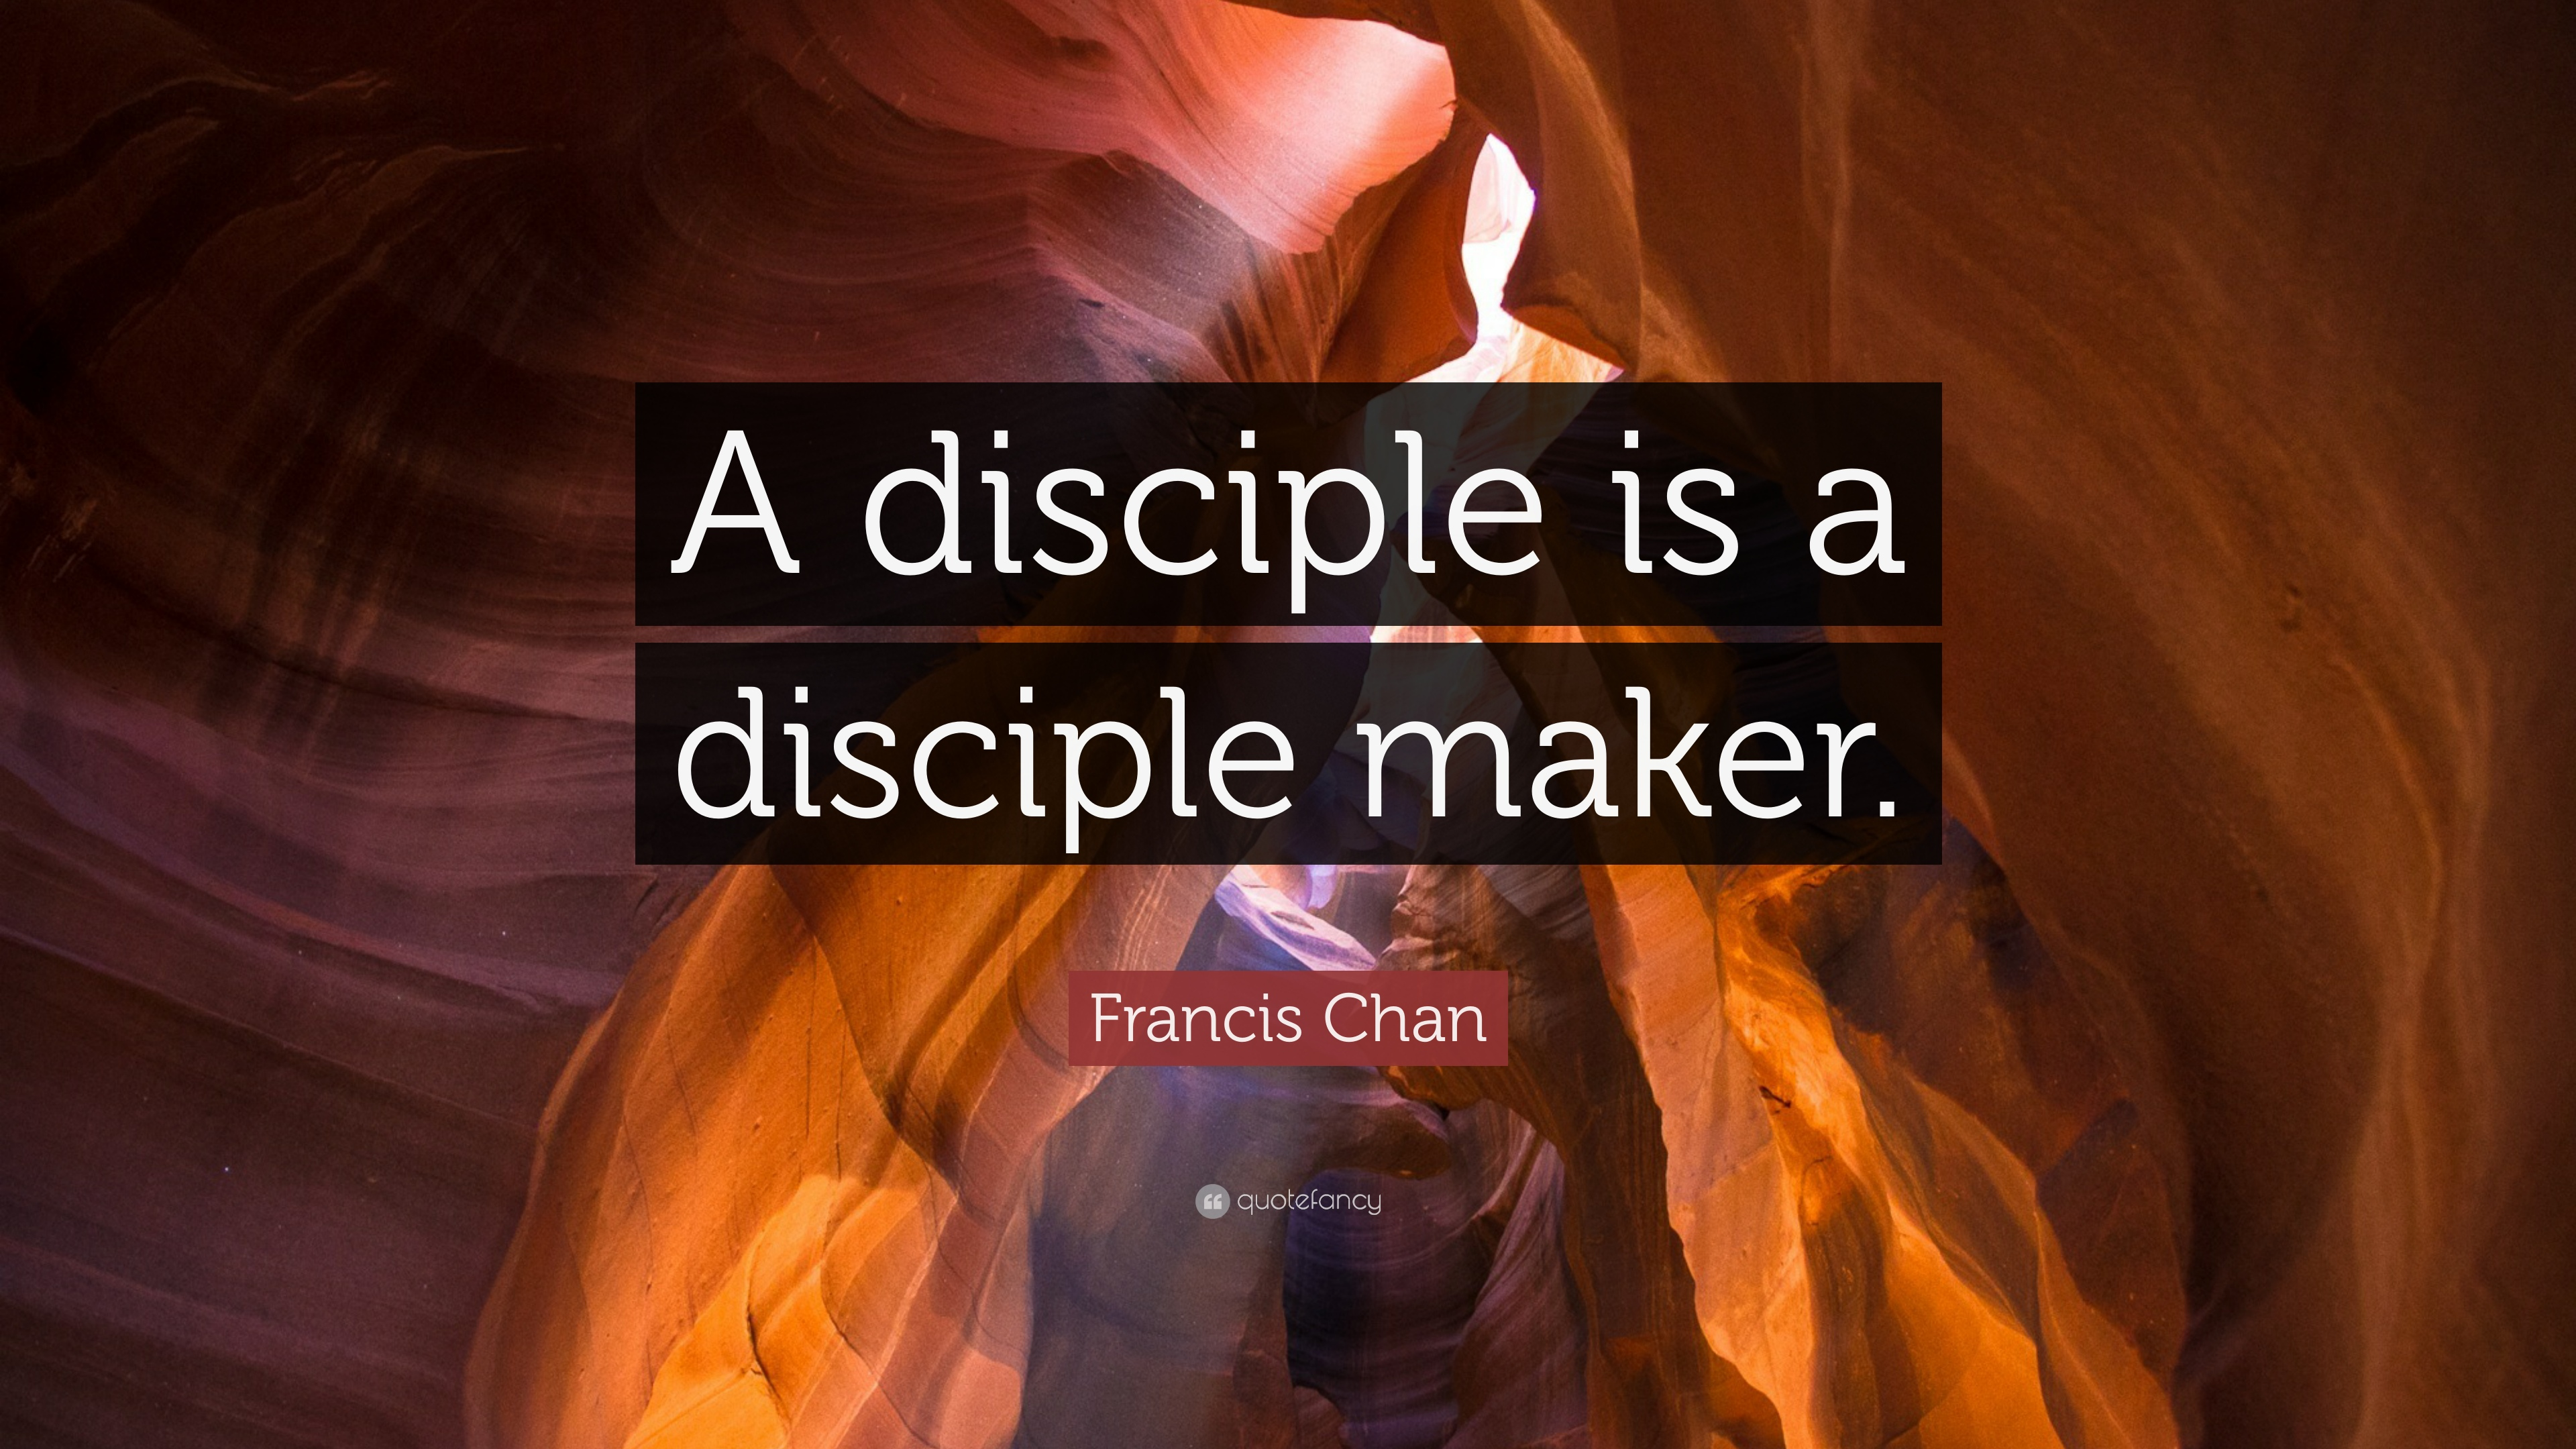 Francis Chan Quote A Disciple Is A Disciple Maker 12 Wallpapers Quotefancy